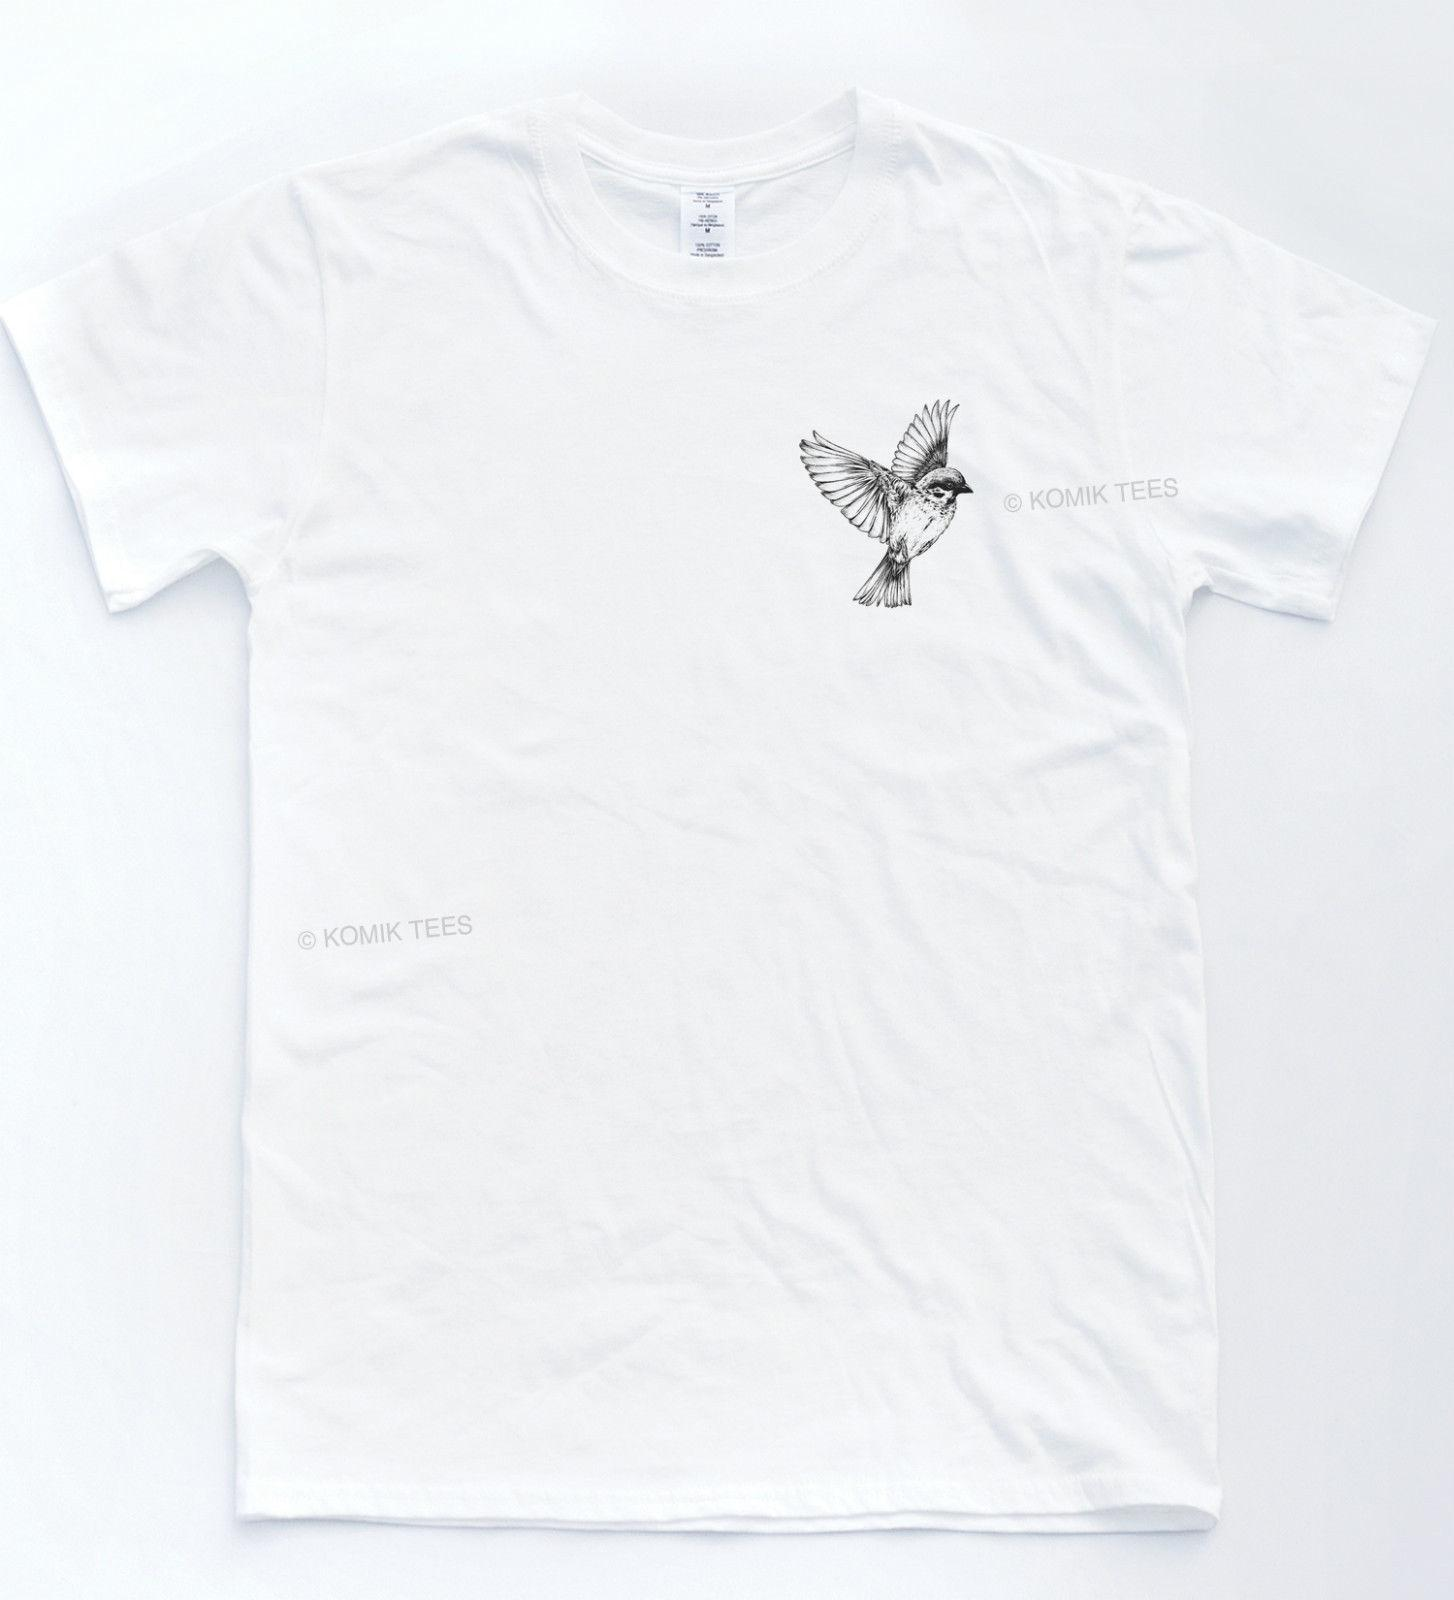 T-shirt à poche oiseau Lit tatoué arraché Savage Turn Sketch Indie Hipster Top vêtements en jean camiseta t-shirt